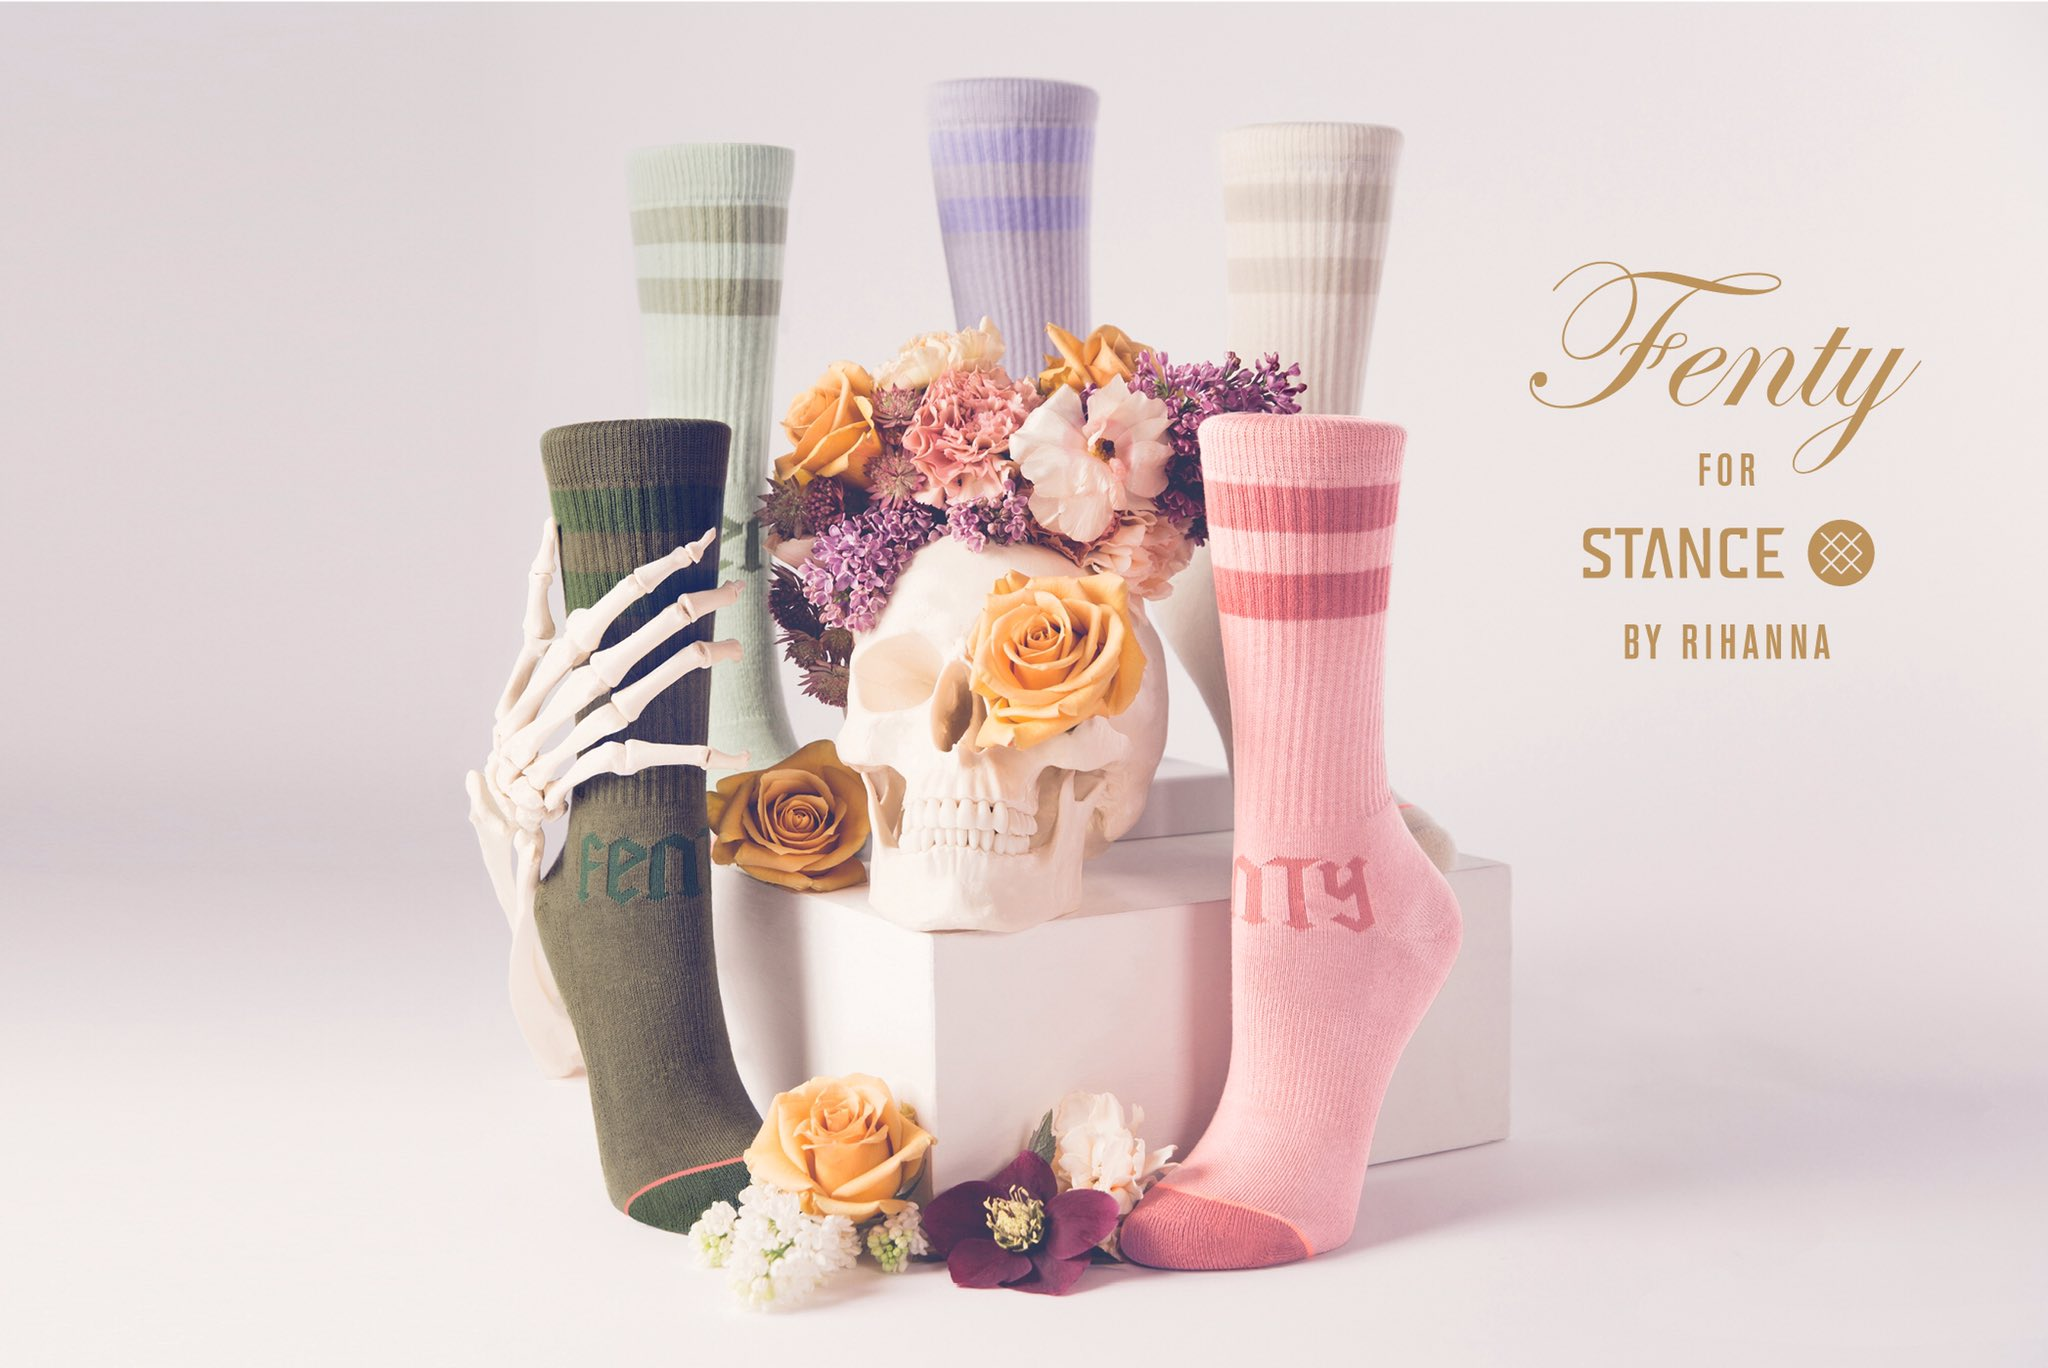 Spring collection is here!!! Get this season's must-have socks now at https://t.co/NwE9jlLQHI #RihannaXStance https://t.co/VbJBfpTP5u